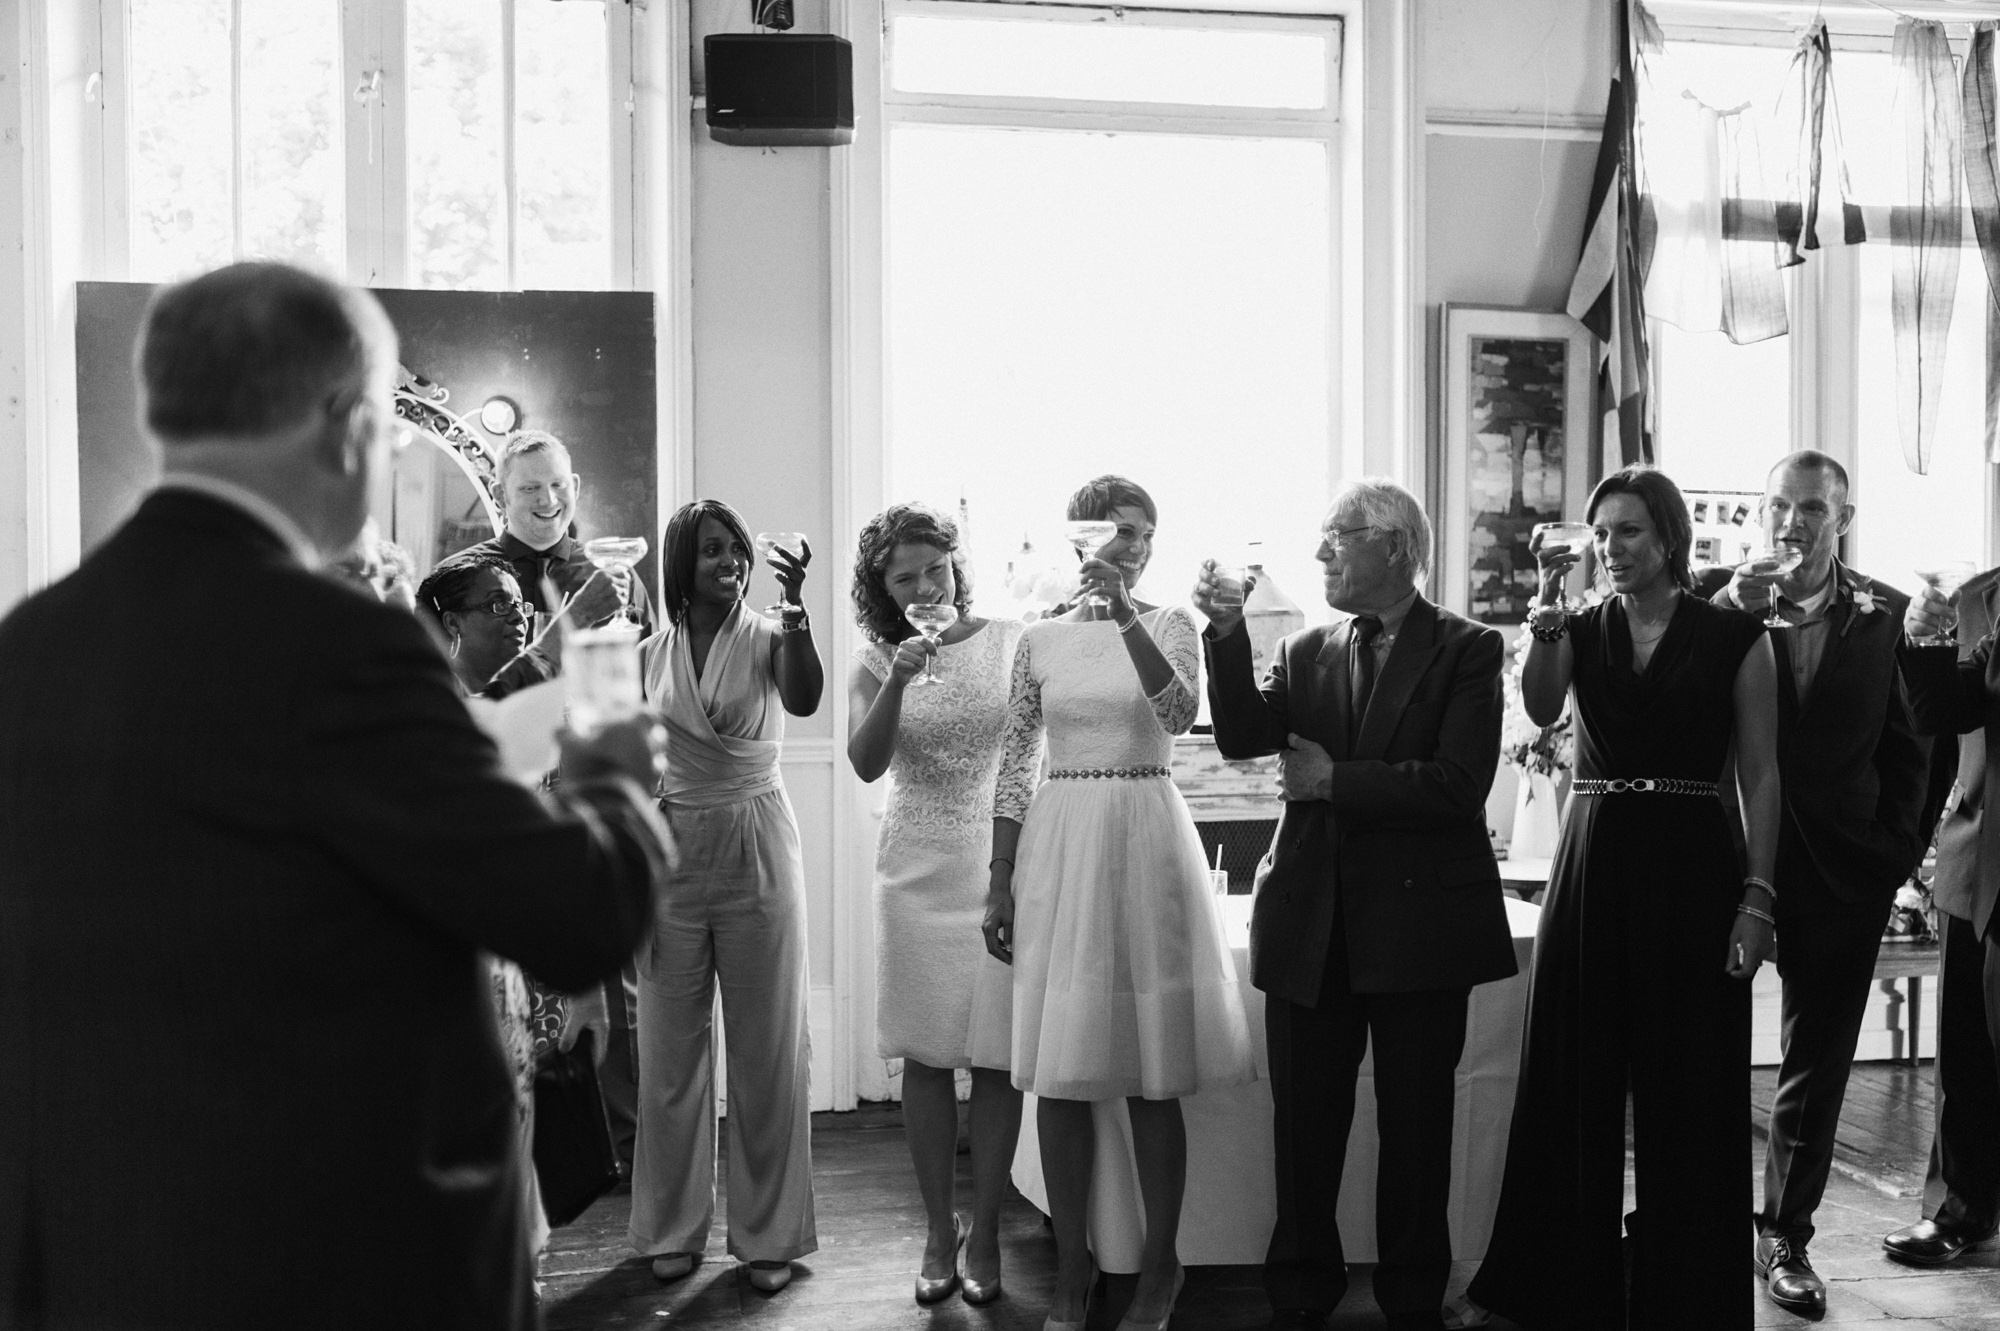 Toasting the gay wedding The Roost Dalston wedding - quirky London wedding photographer © Babb Photo